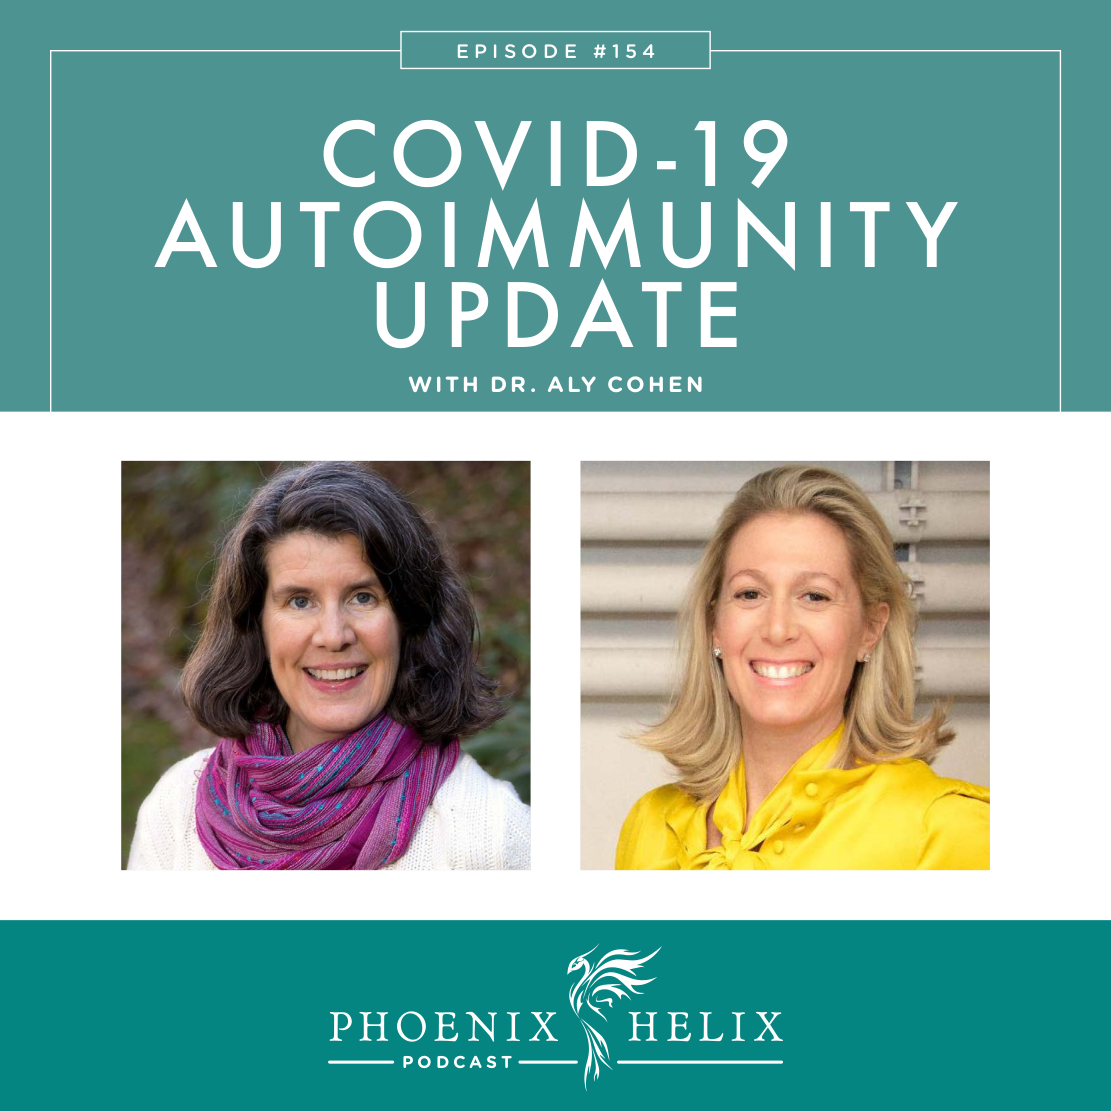 COVID-19 and Autoimmune Disease Update with Dr. Aly Cohen | Phoenix Helix Podcast